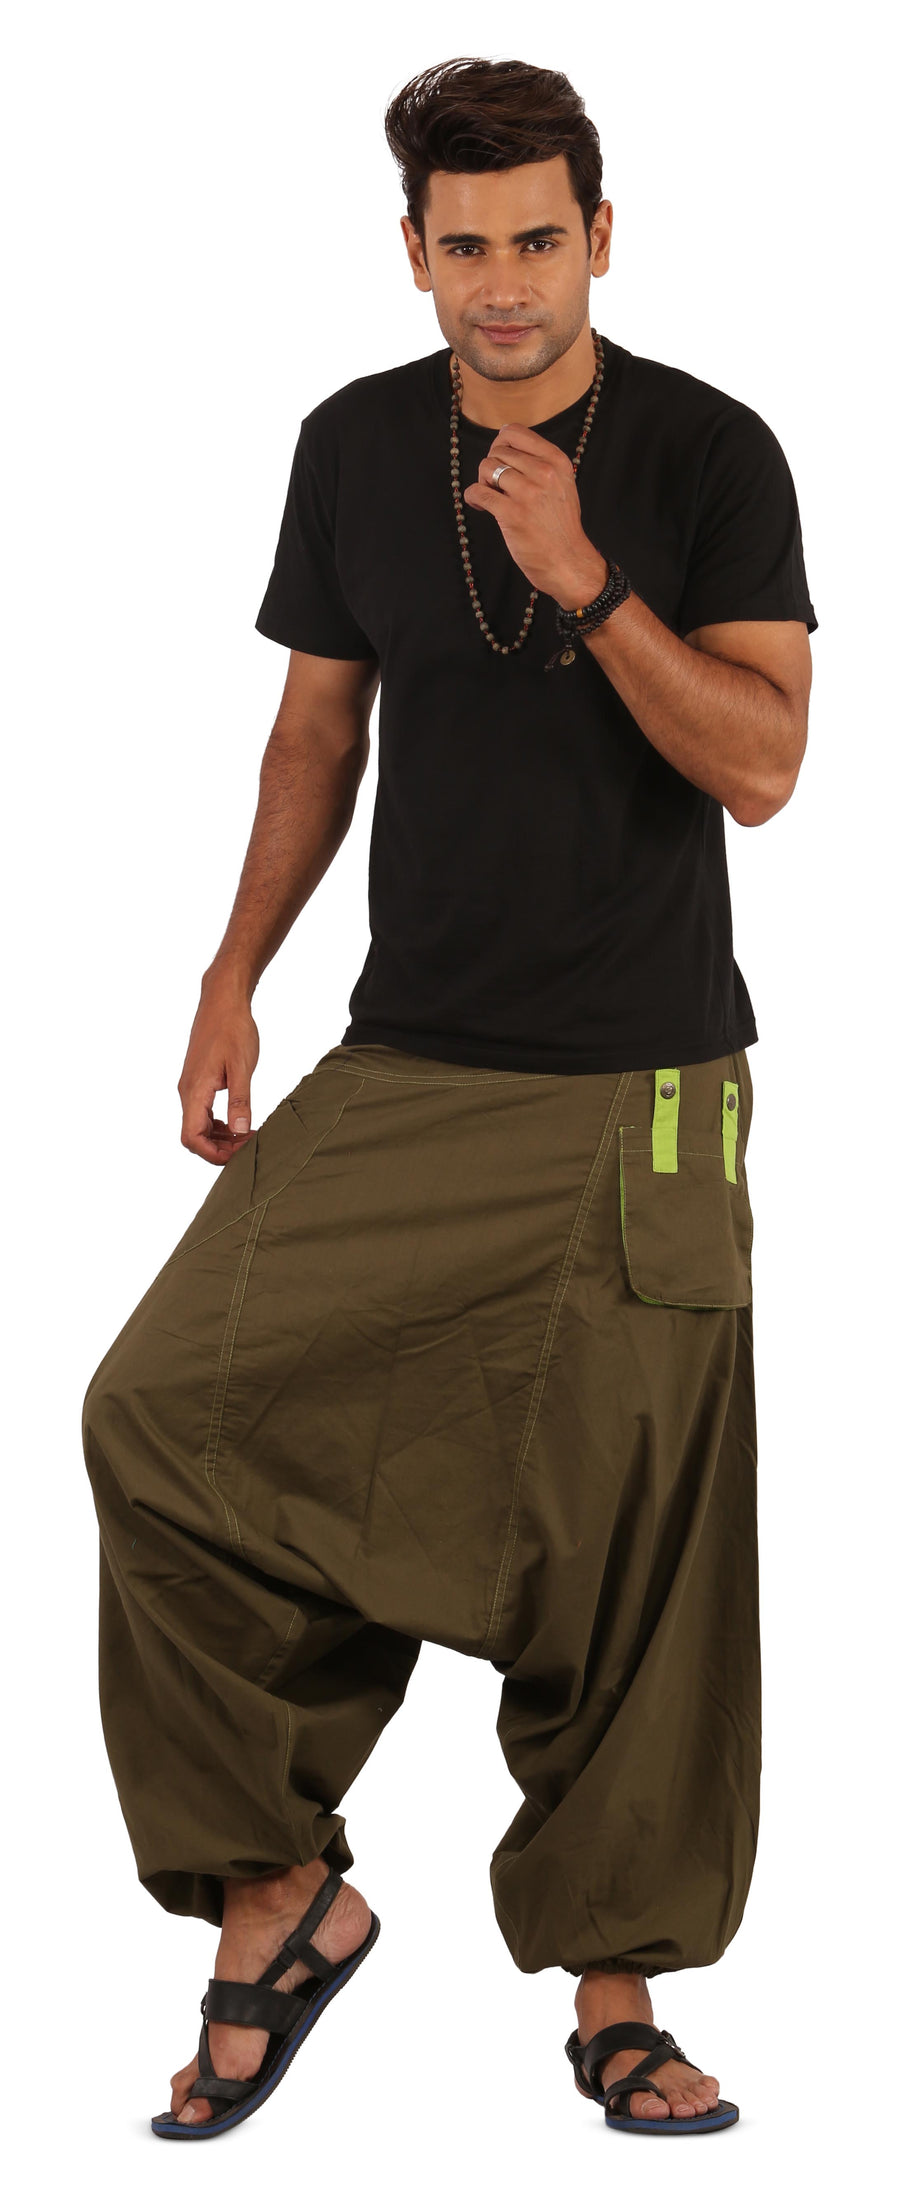 Harem Pants, Khaki Harem Pants, Show me some Mens Harem Pants, Show me some Womens Harem Pants, What is a harem pant, Show me some baggy pants, I want to buy harem pants, comfy pants, travel pants, picnic pants, hiking pants, cool harem pants, Wide leg harem Pants, Cheap Harem Pants, Hippie Pants, Cotton Harem Pants, Show me best harem pants, Highly rated Harem Pants, Best Casual Pants